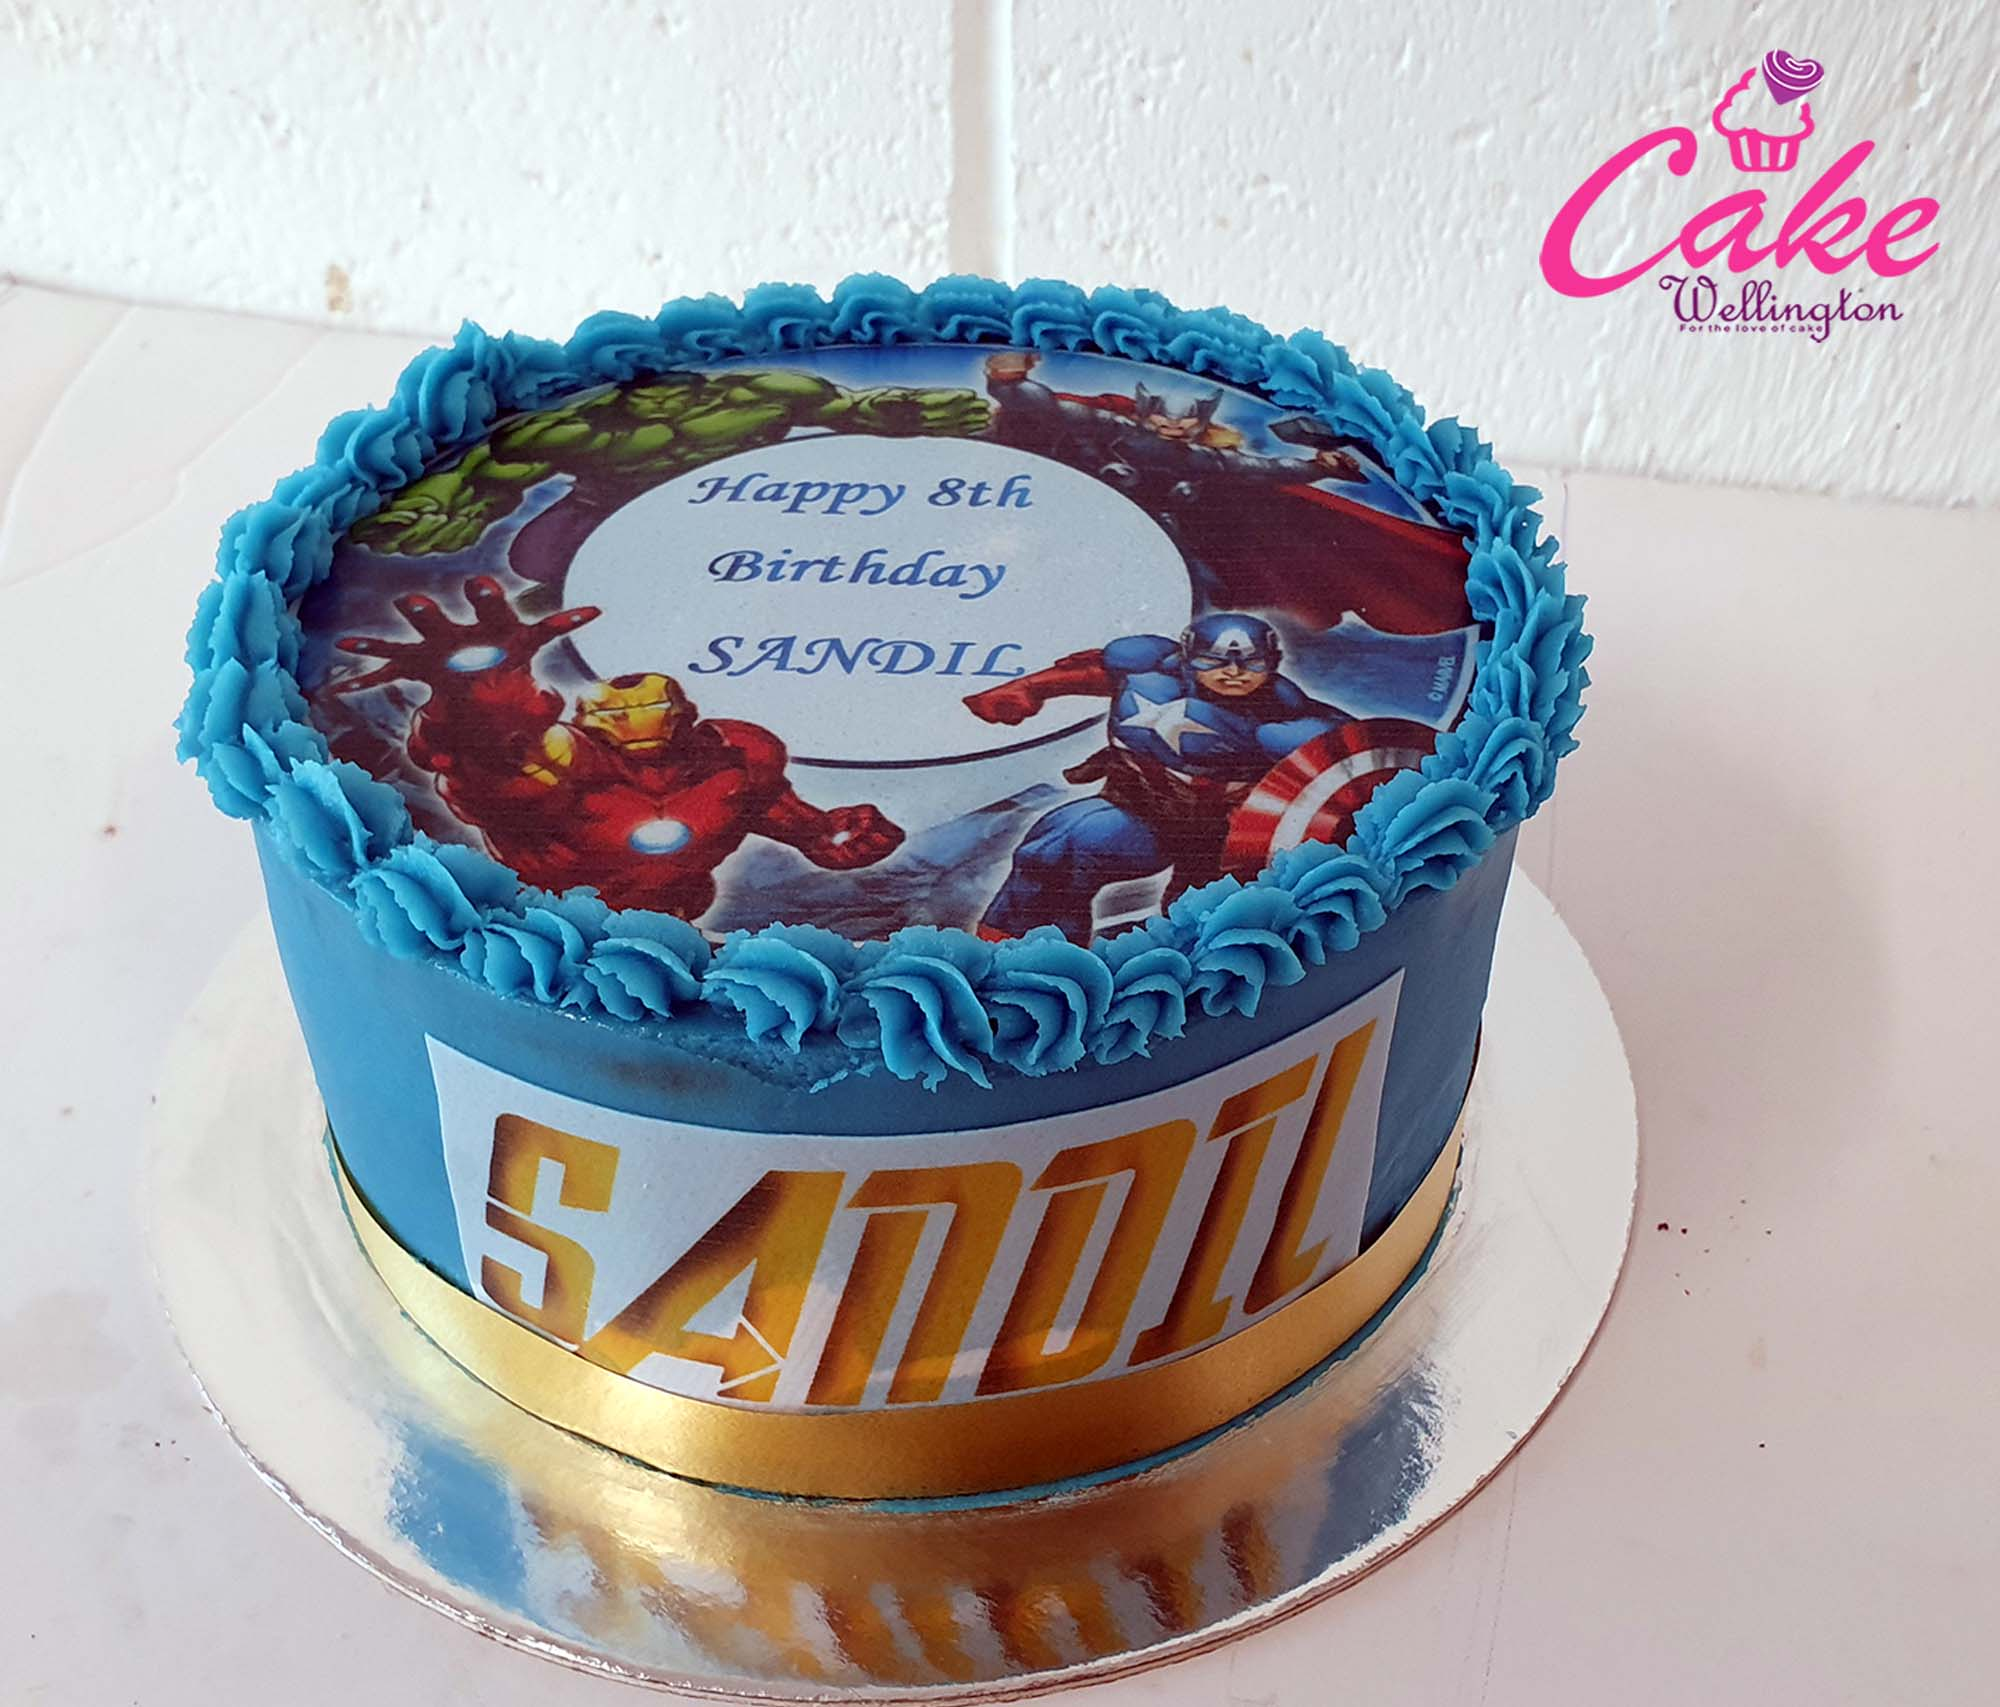 Stupendous Avenger Birthday Cake For Boys Birthday Parties From Cake Wellington Funny Birthday Cards Online Elaedamsfinfo